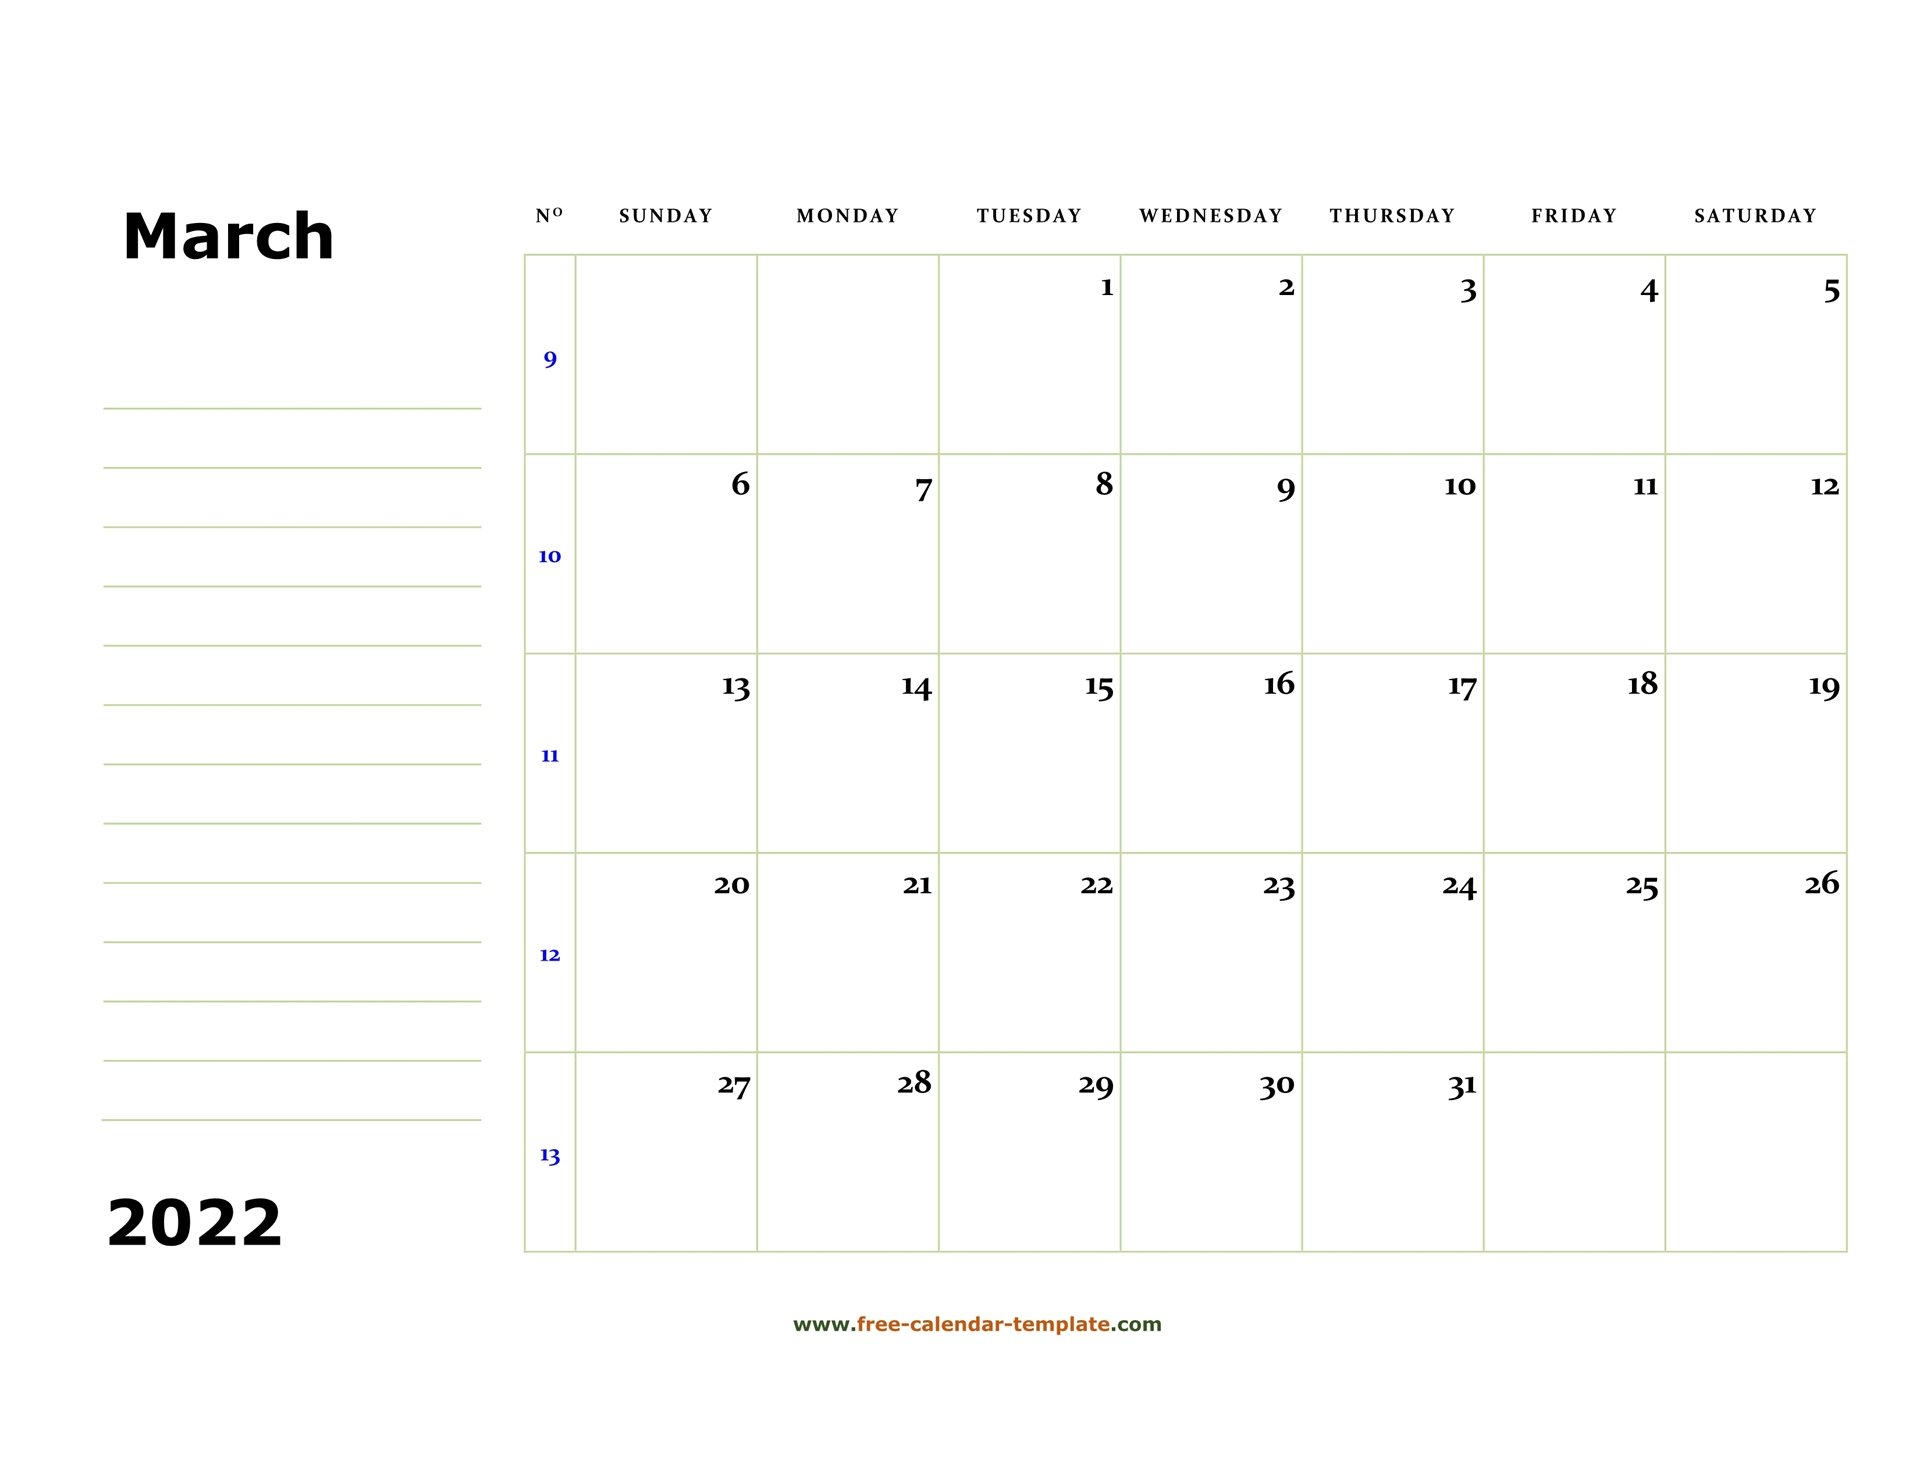 March 2022 Free Calendar Tempplate | Free-Calendar intended for March 2022 Calendar Template Image